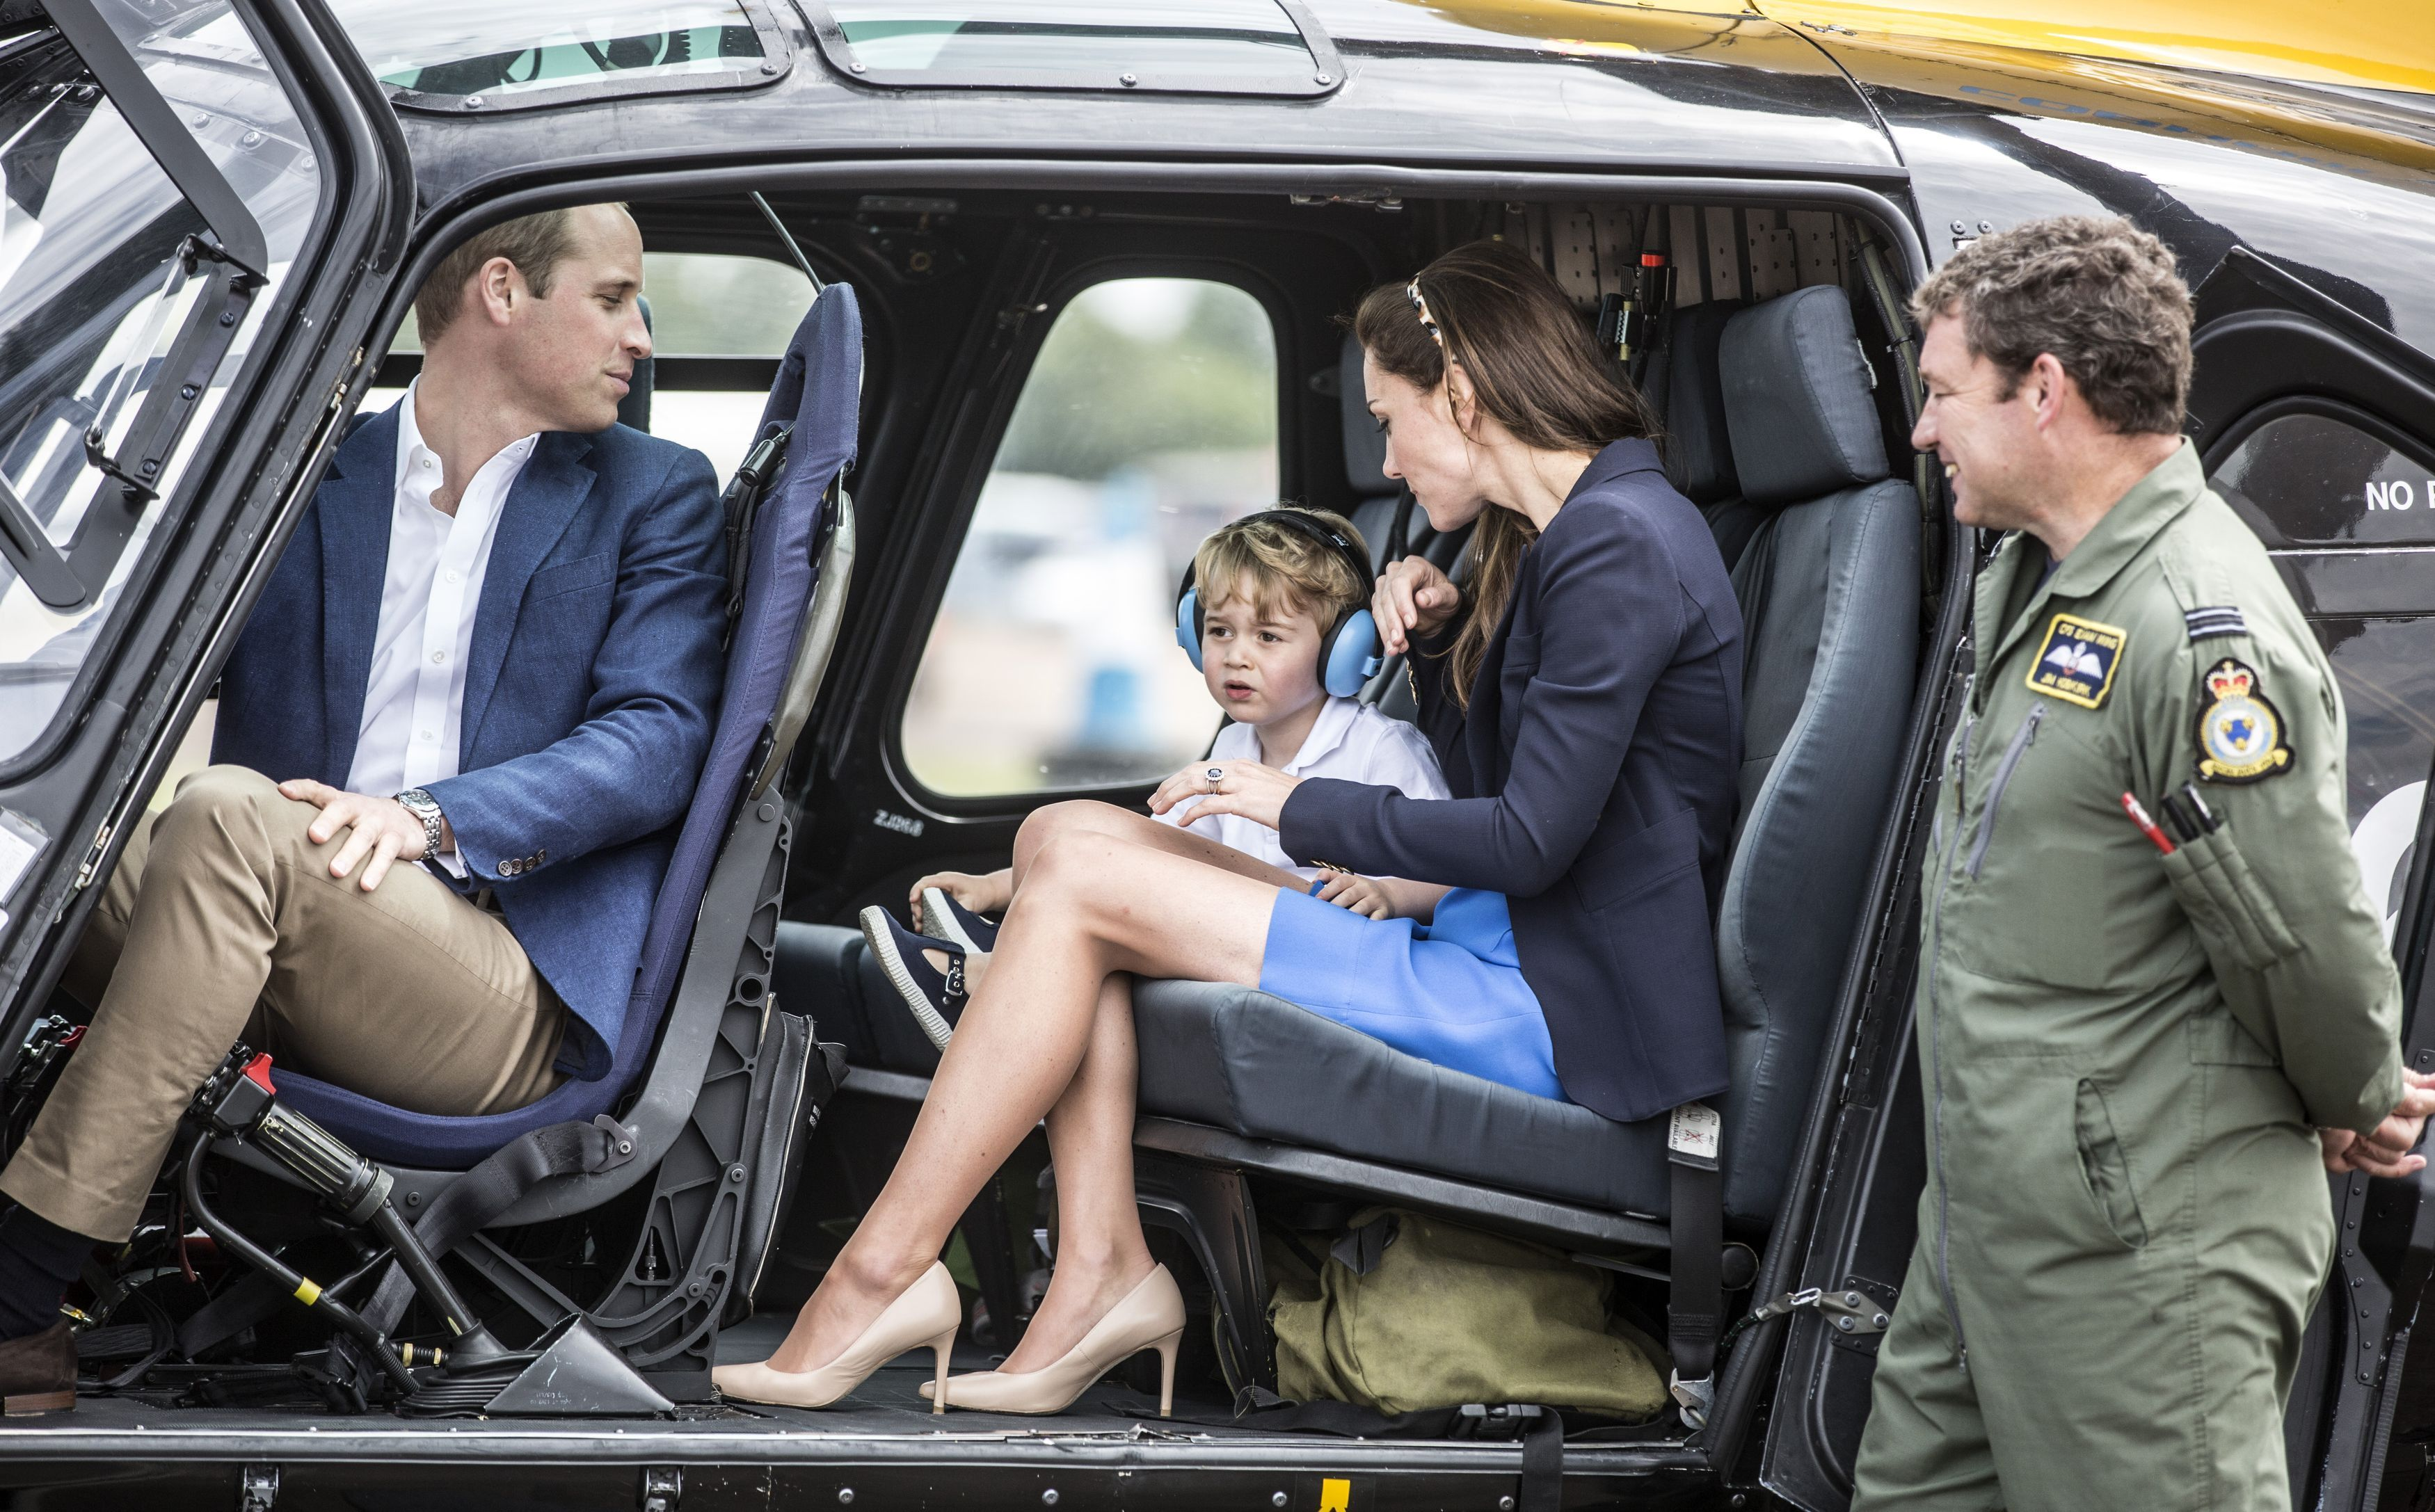 Prince George sits in a Squirrel helicopter with his parents the Duke and Duchess of Cambridge during a visit to the Royal International Air Tattoo at RAF Fairford - the world's largest military airshow